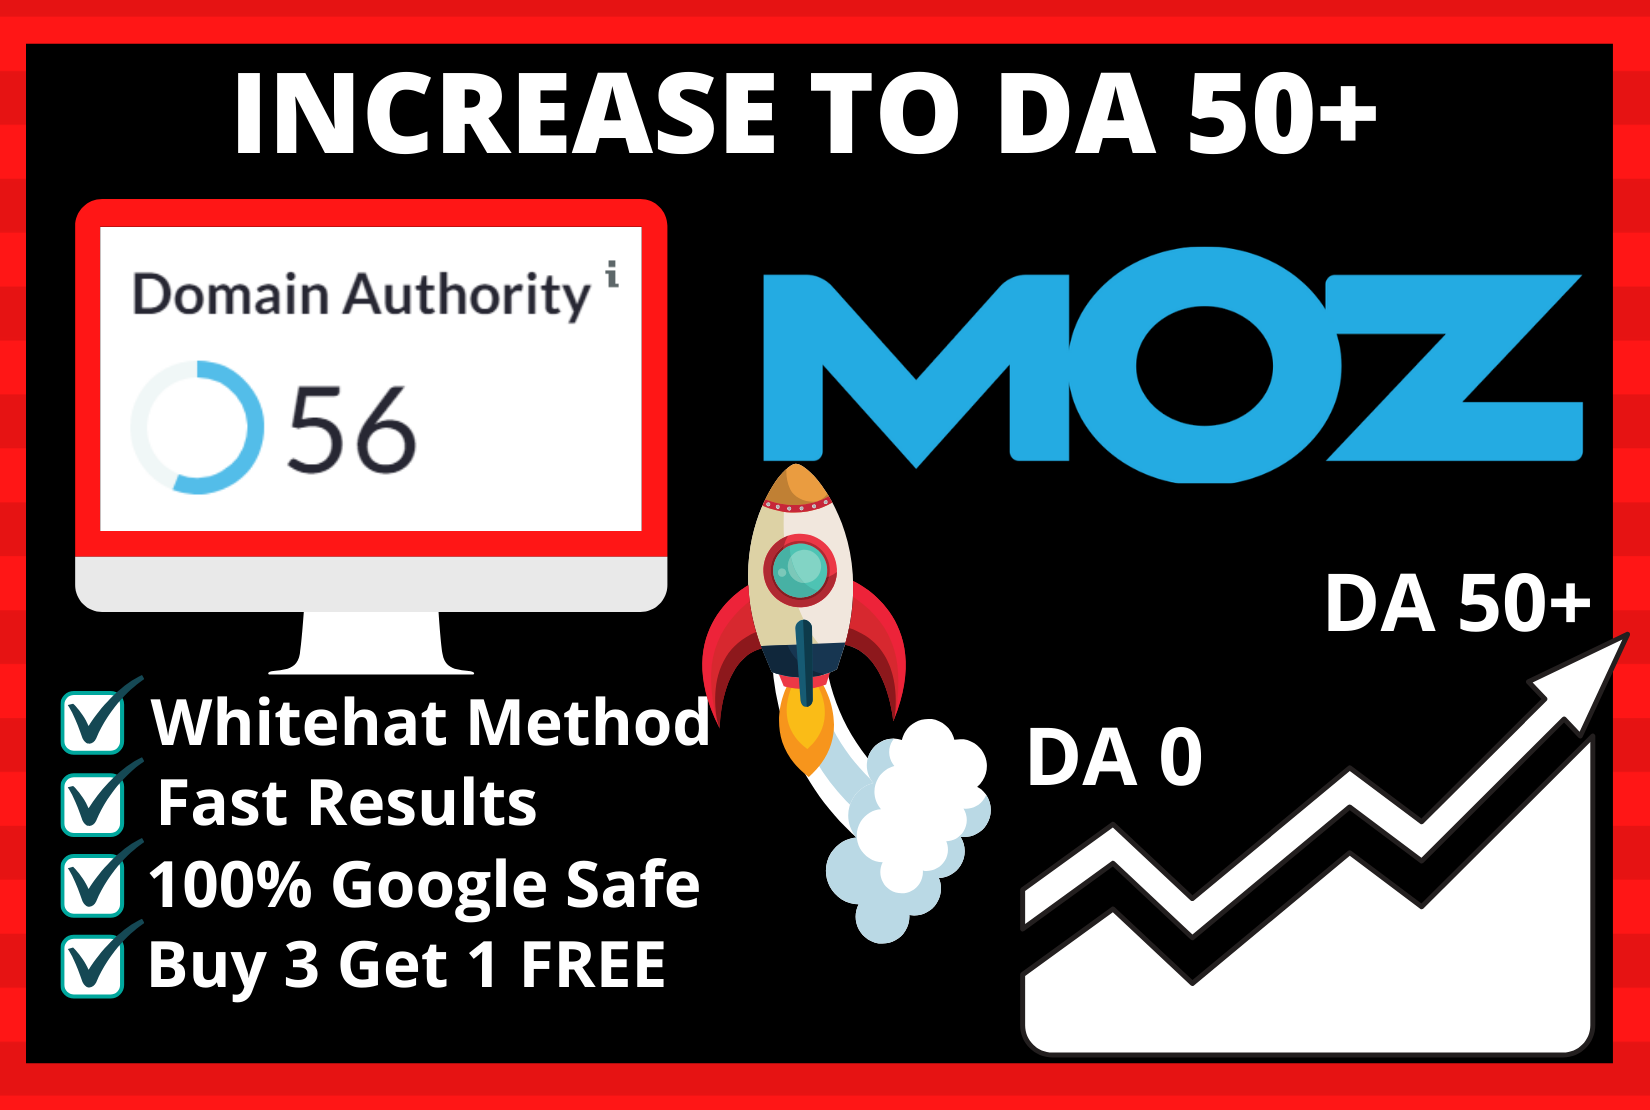 Whitehat Method - Will Boost Website DA 50+In 14 days